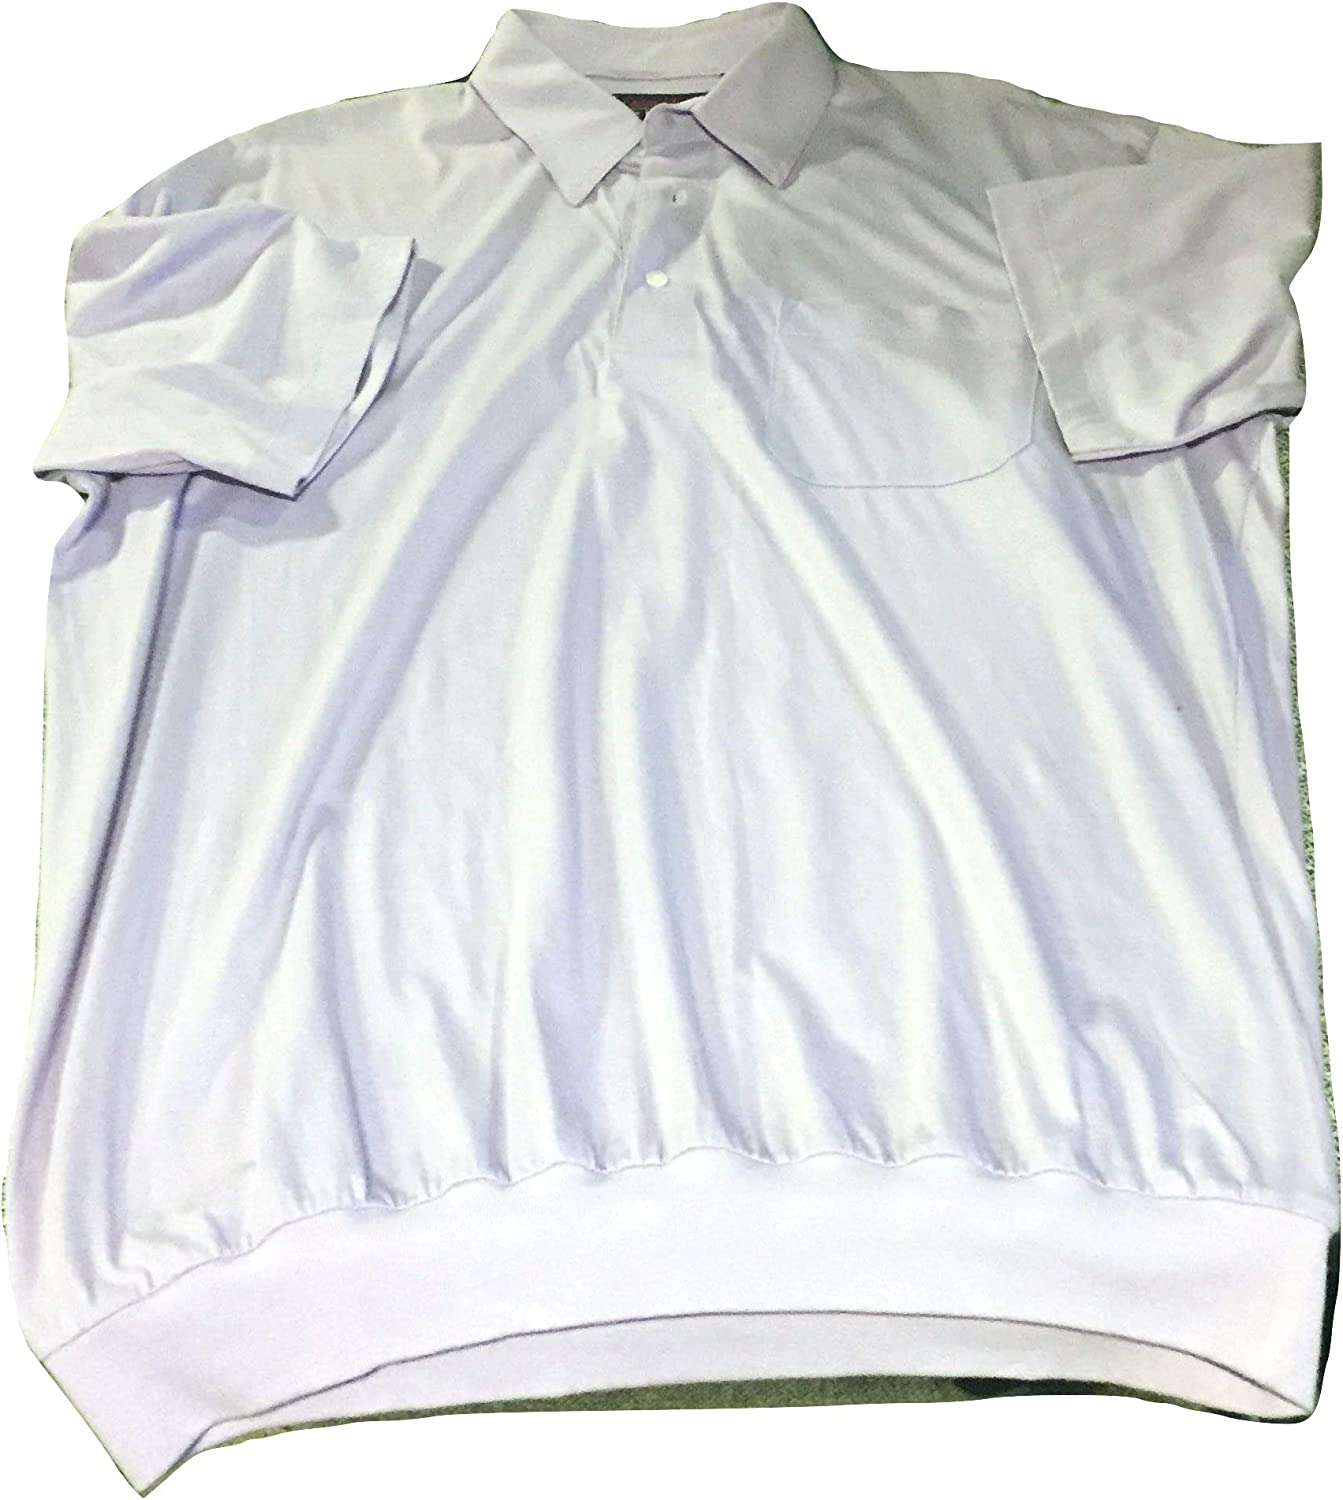 Cotton Mist by Enro Banded Bottom Big and Tall Lightweight Polo Shirts